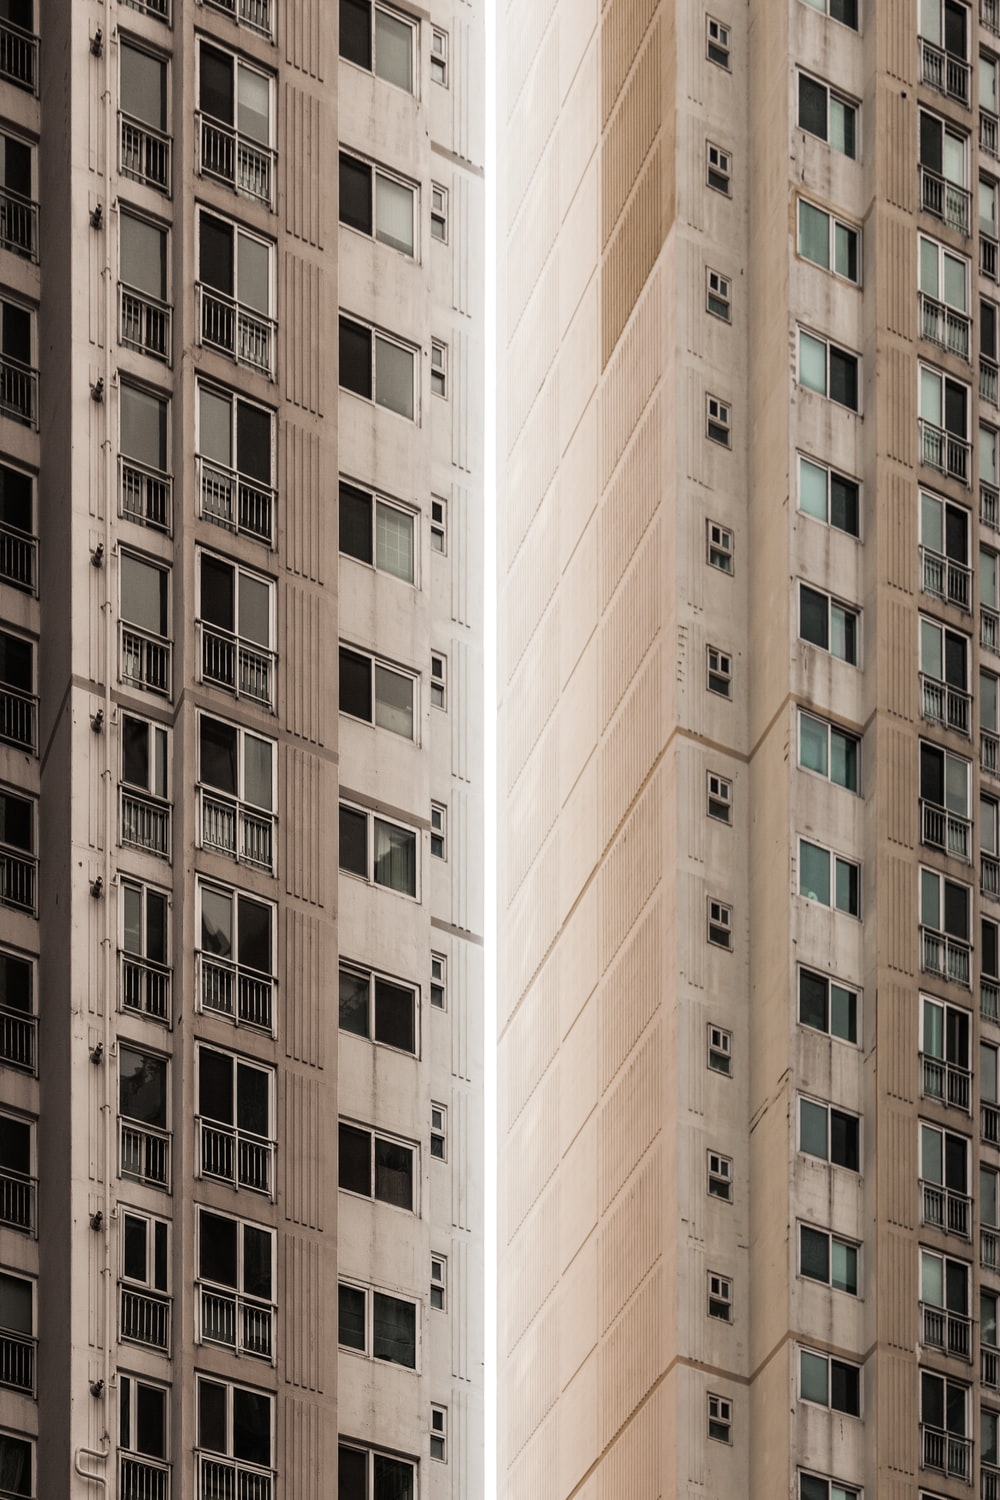 brown and white concrete building